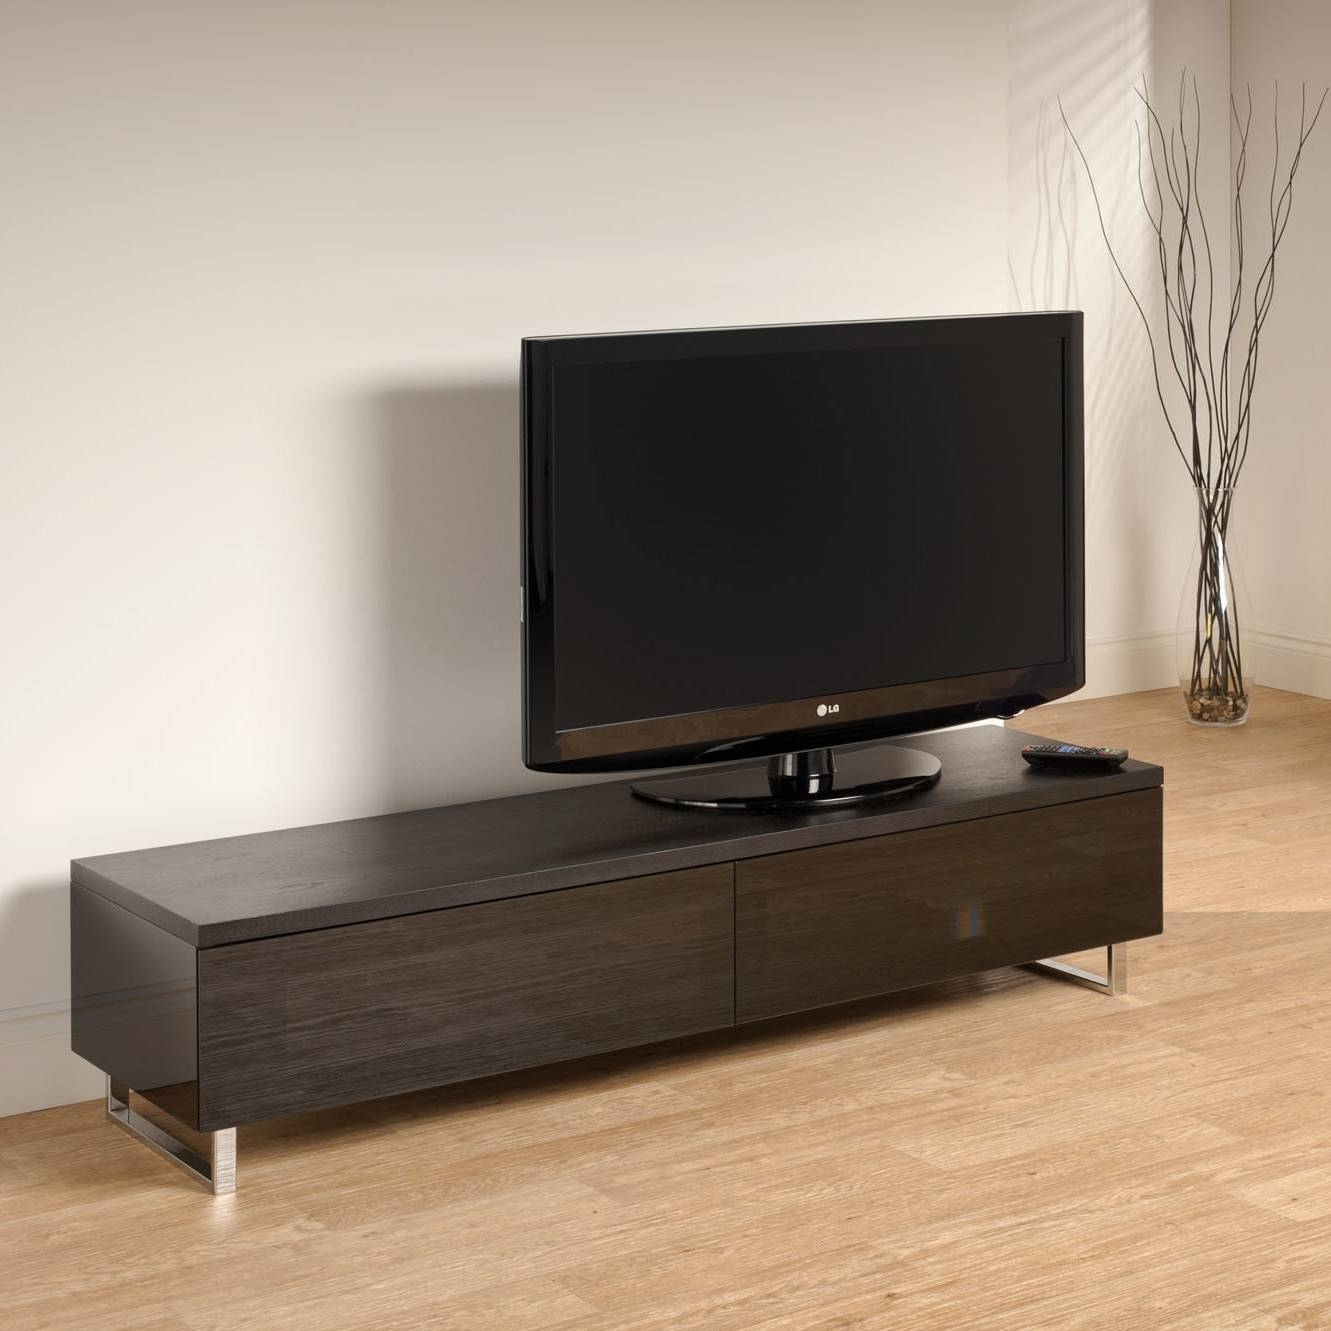 Good Modern Low Profile Tv Stand 24 With Additional Interior For Low Profile Contemporary Tv Stands (View 7 of 15)